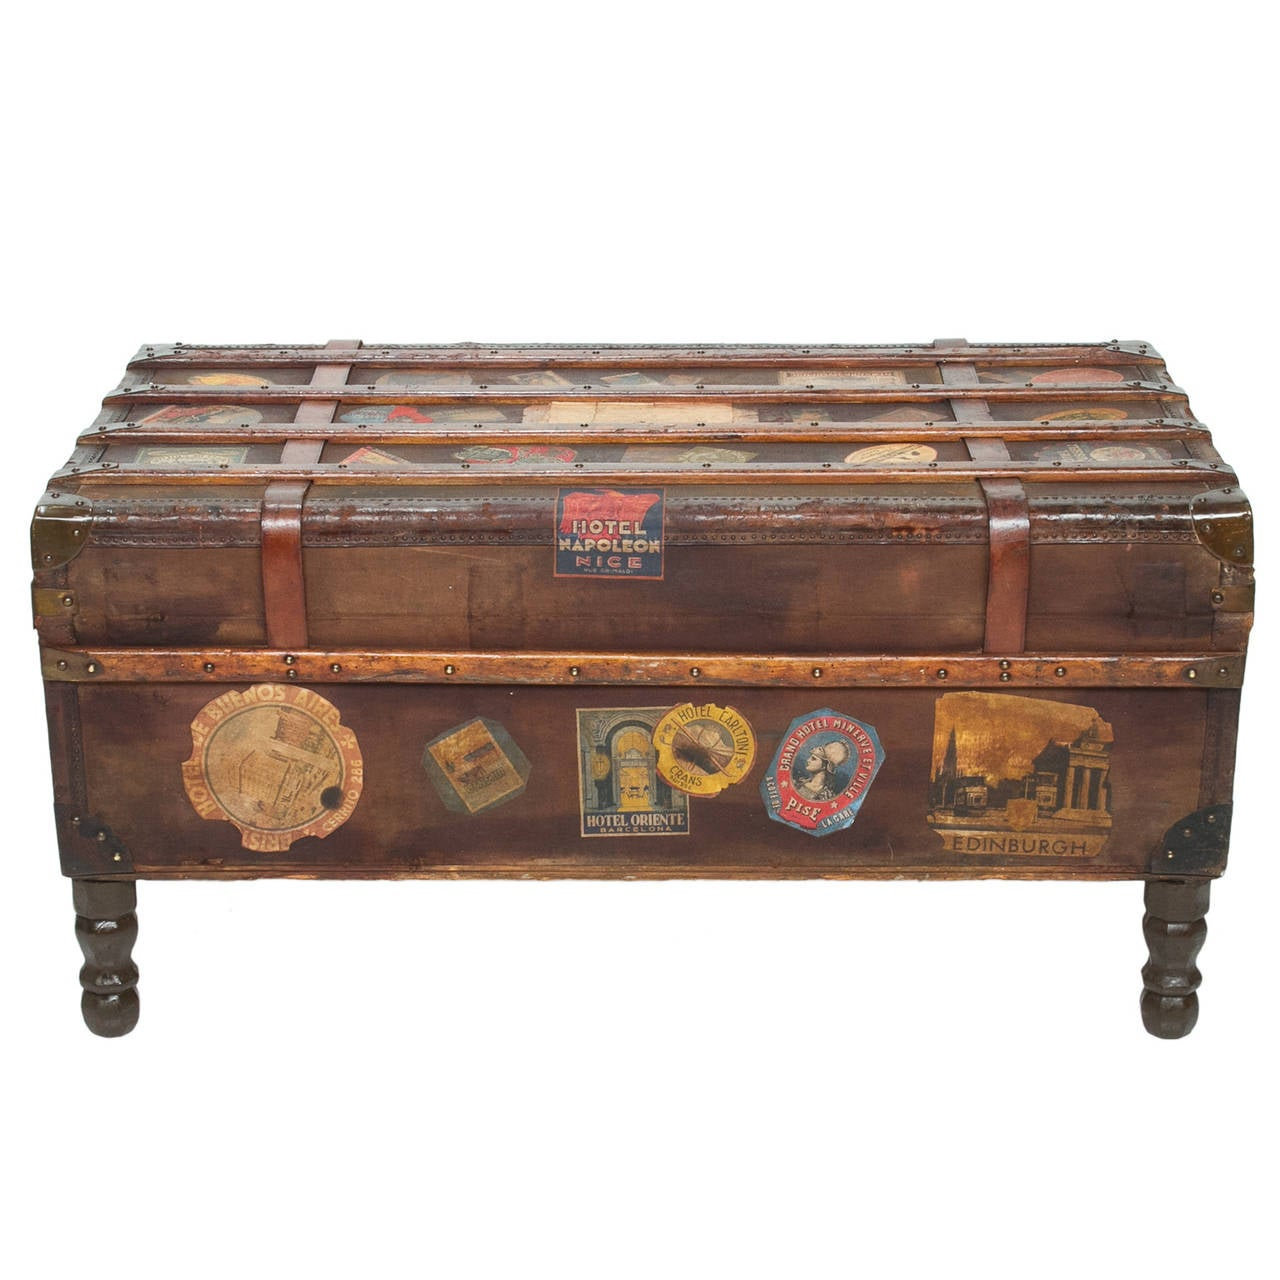 Vintage Travel Trunk Coffee Table By Arthur Eymann From Marseille France At 1stdibs